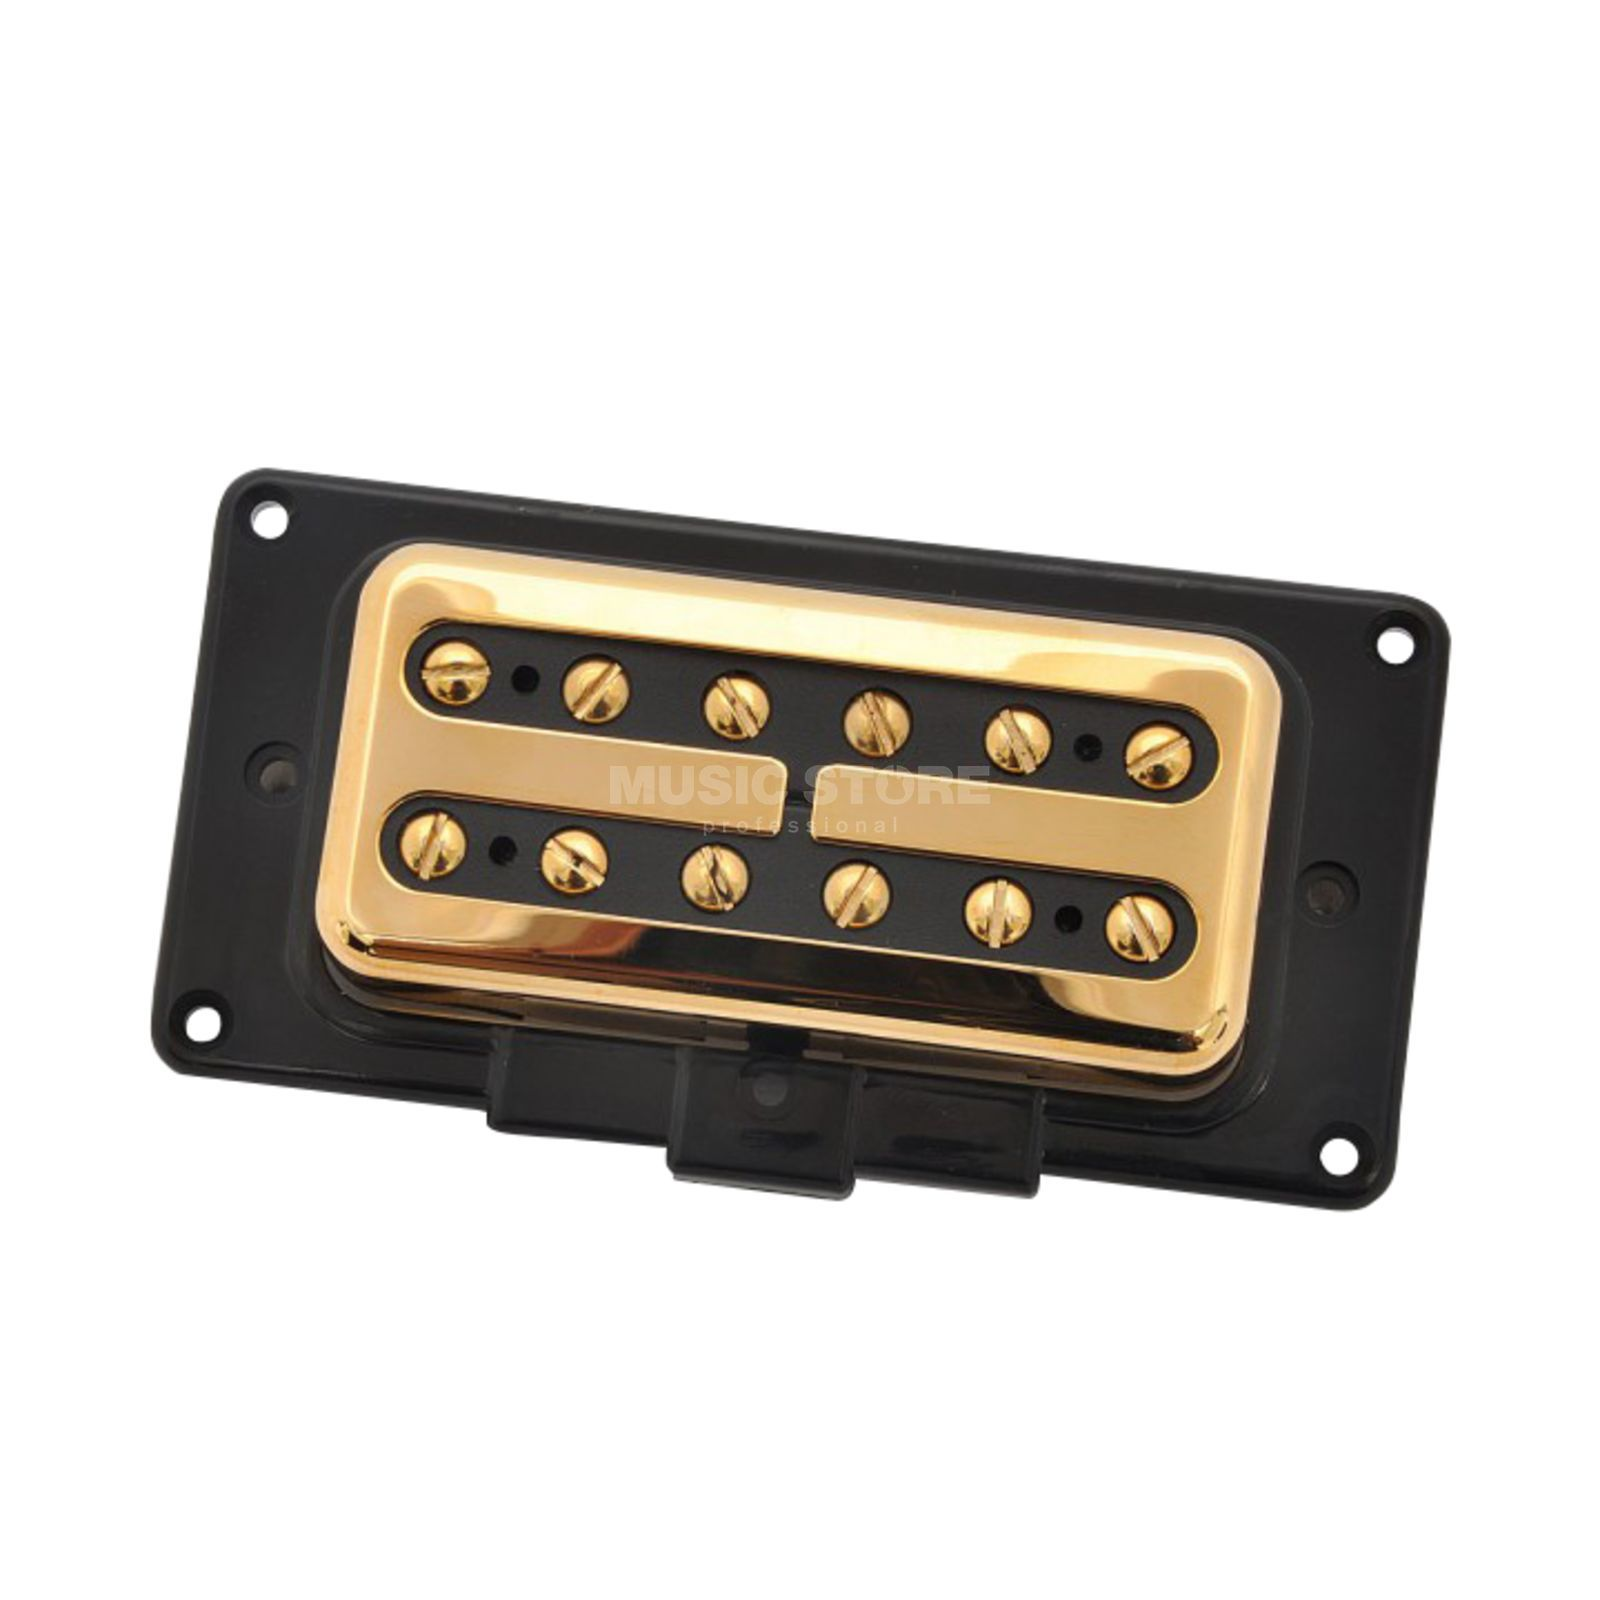 Duesenberg Duesenberg Little Toaster B Bridge, gold Produktbild